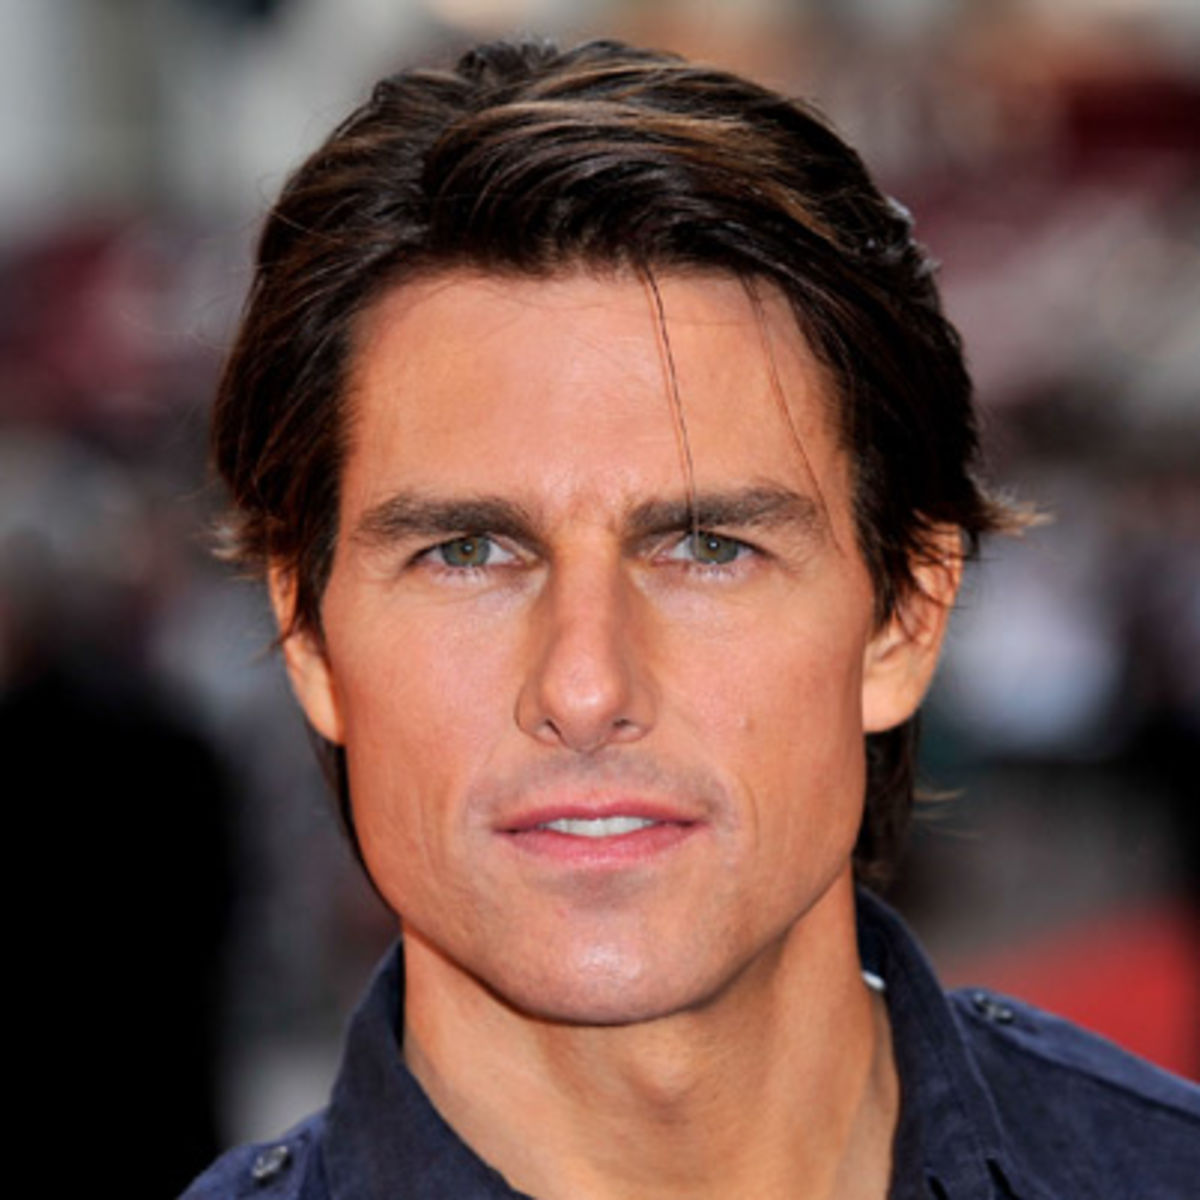 Tom Cruise: $540 million